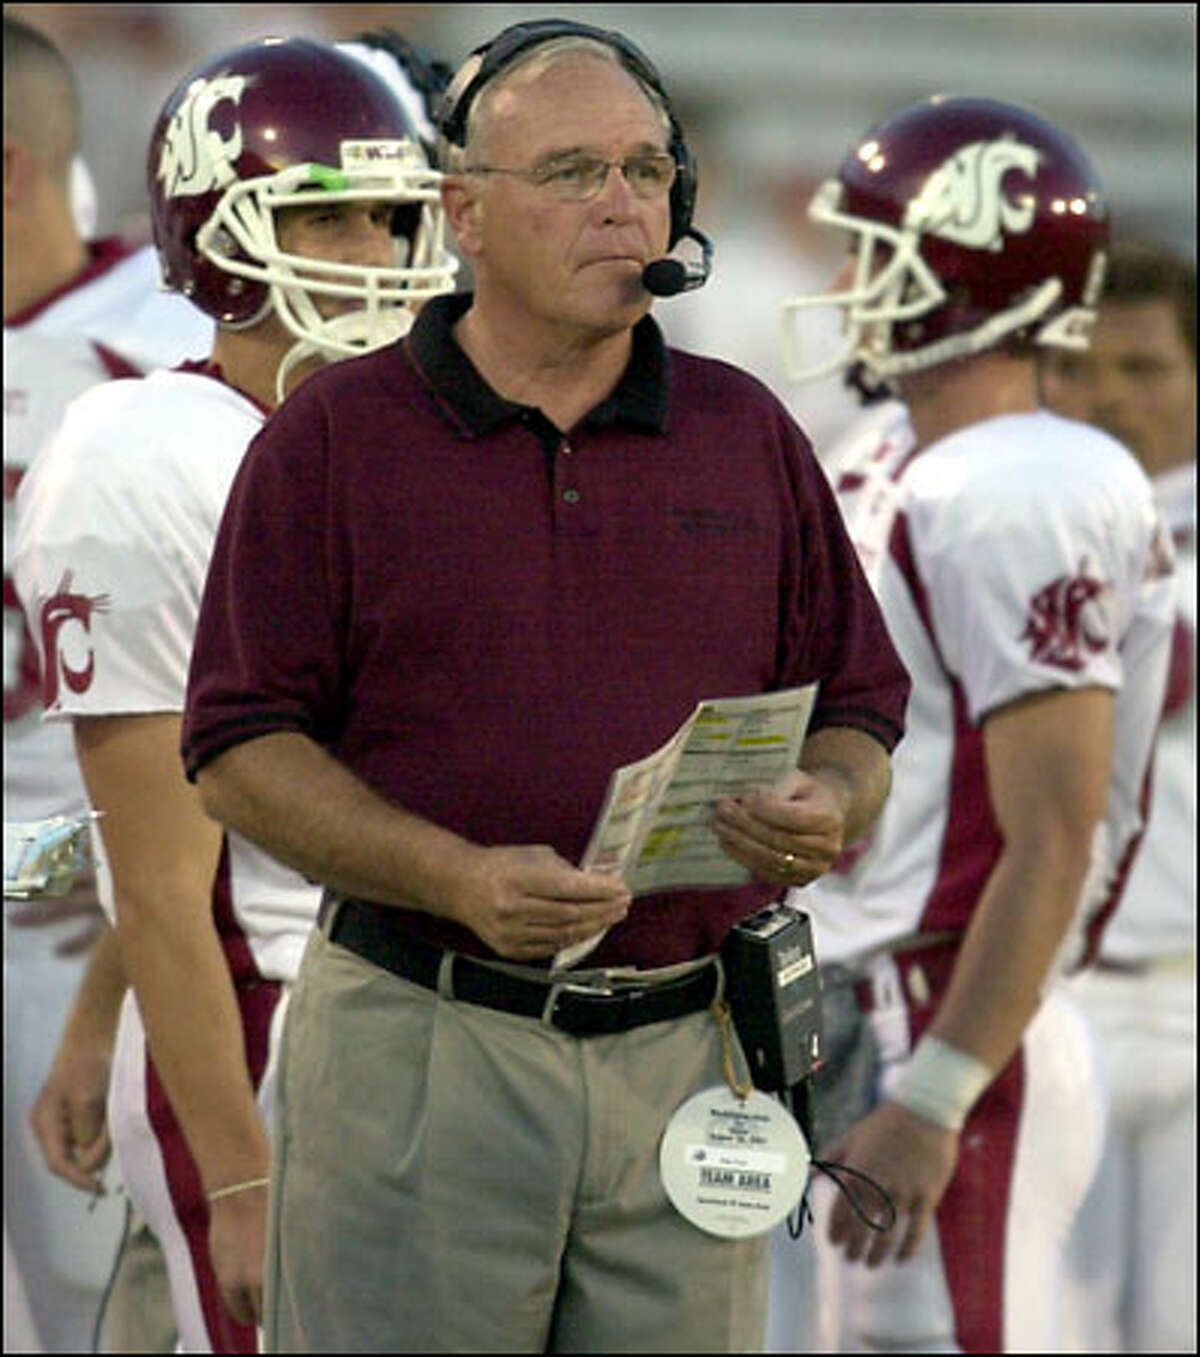 No doubt another of Mike Price's contract perks at WSU is that super-huge